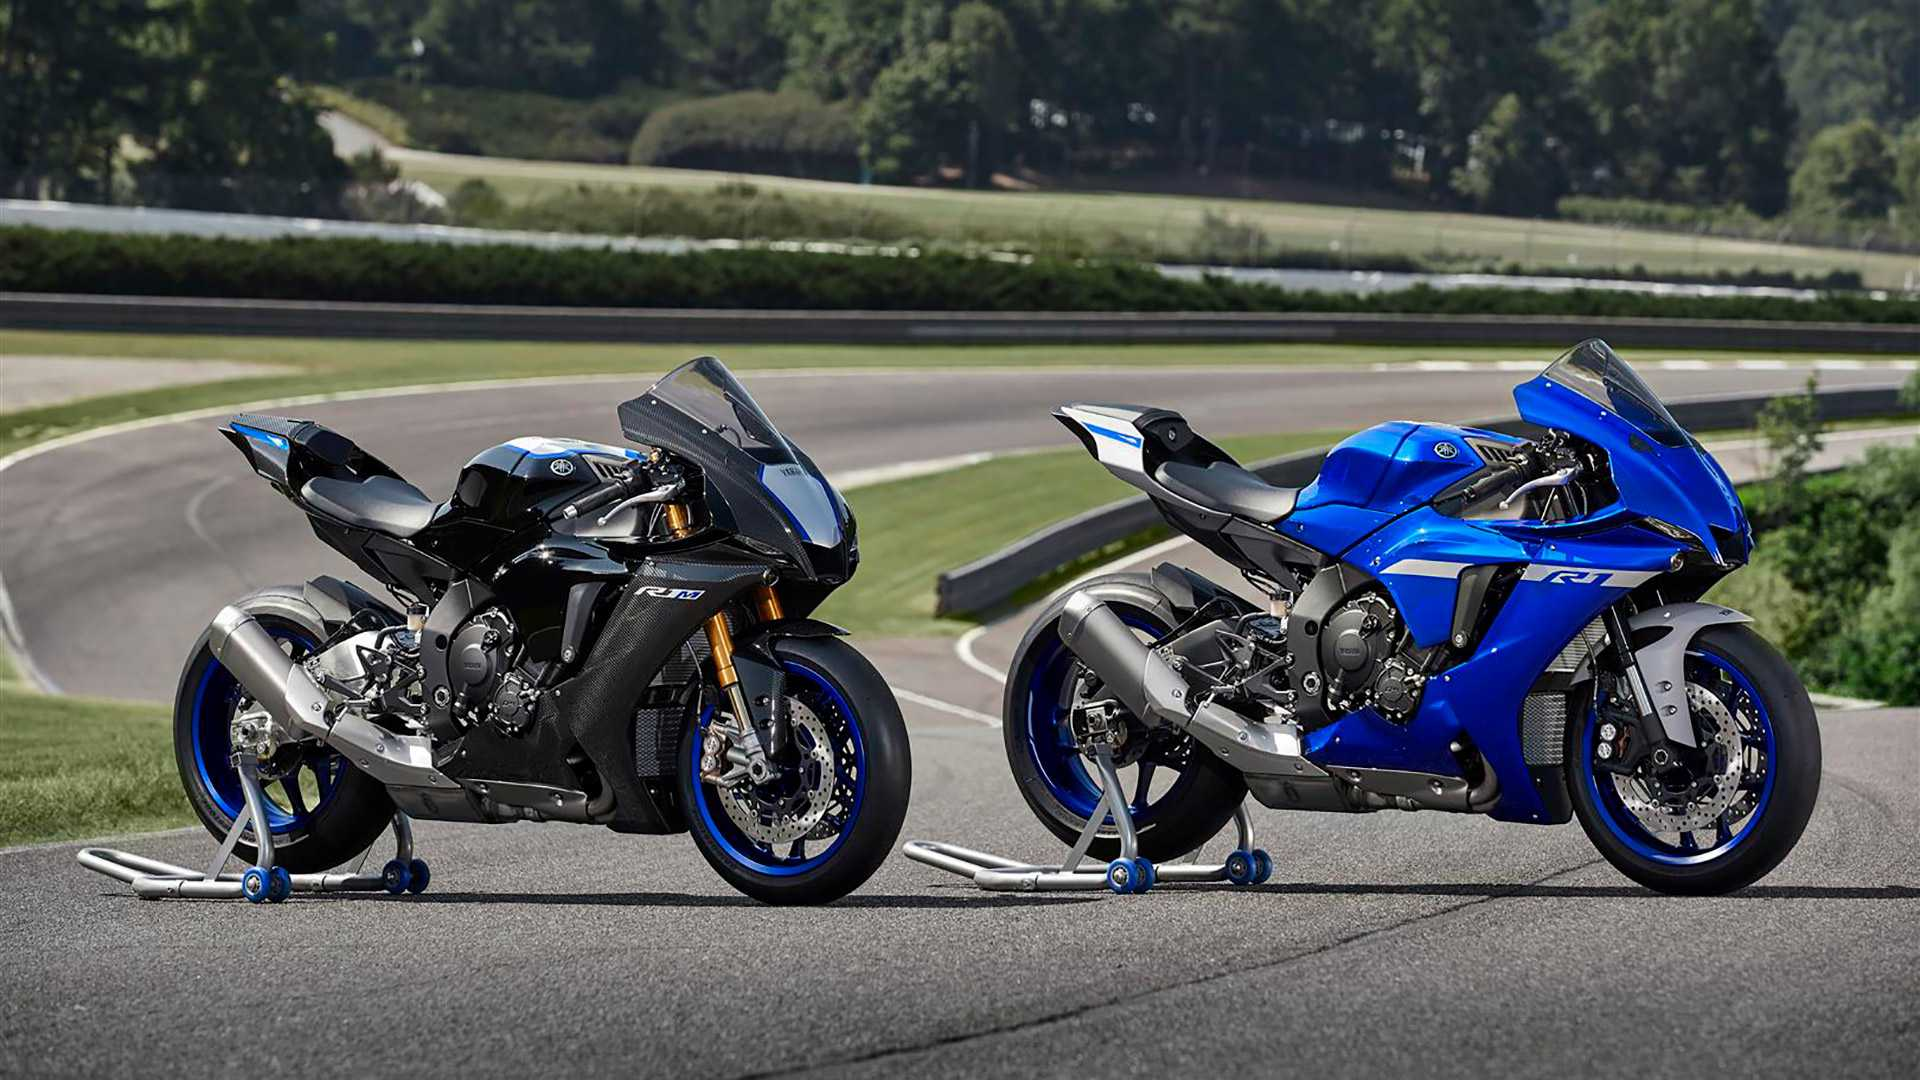 2020 Yamaha Yzf R1m Wallpapers Top Free 2020 Yamaha Yzf R1m Backgrounds Wallpaperaccess